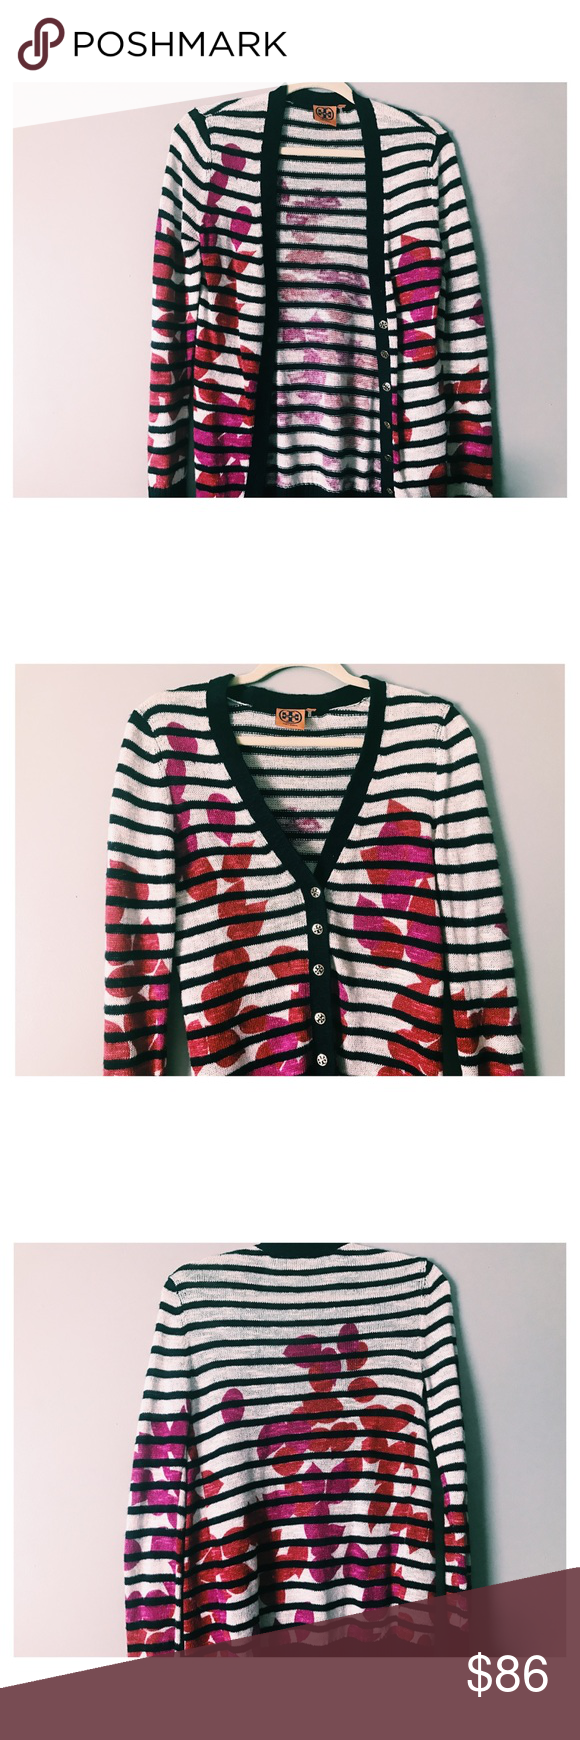 Tory Burch Cardigan | Navy stripes, Navy and Floral